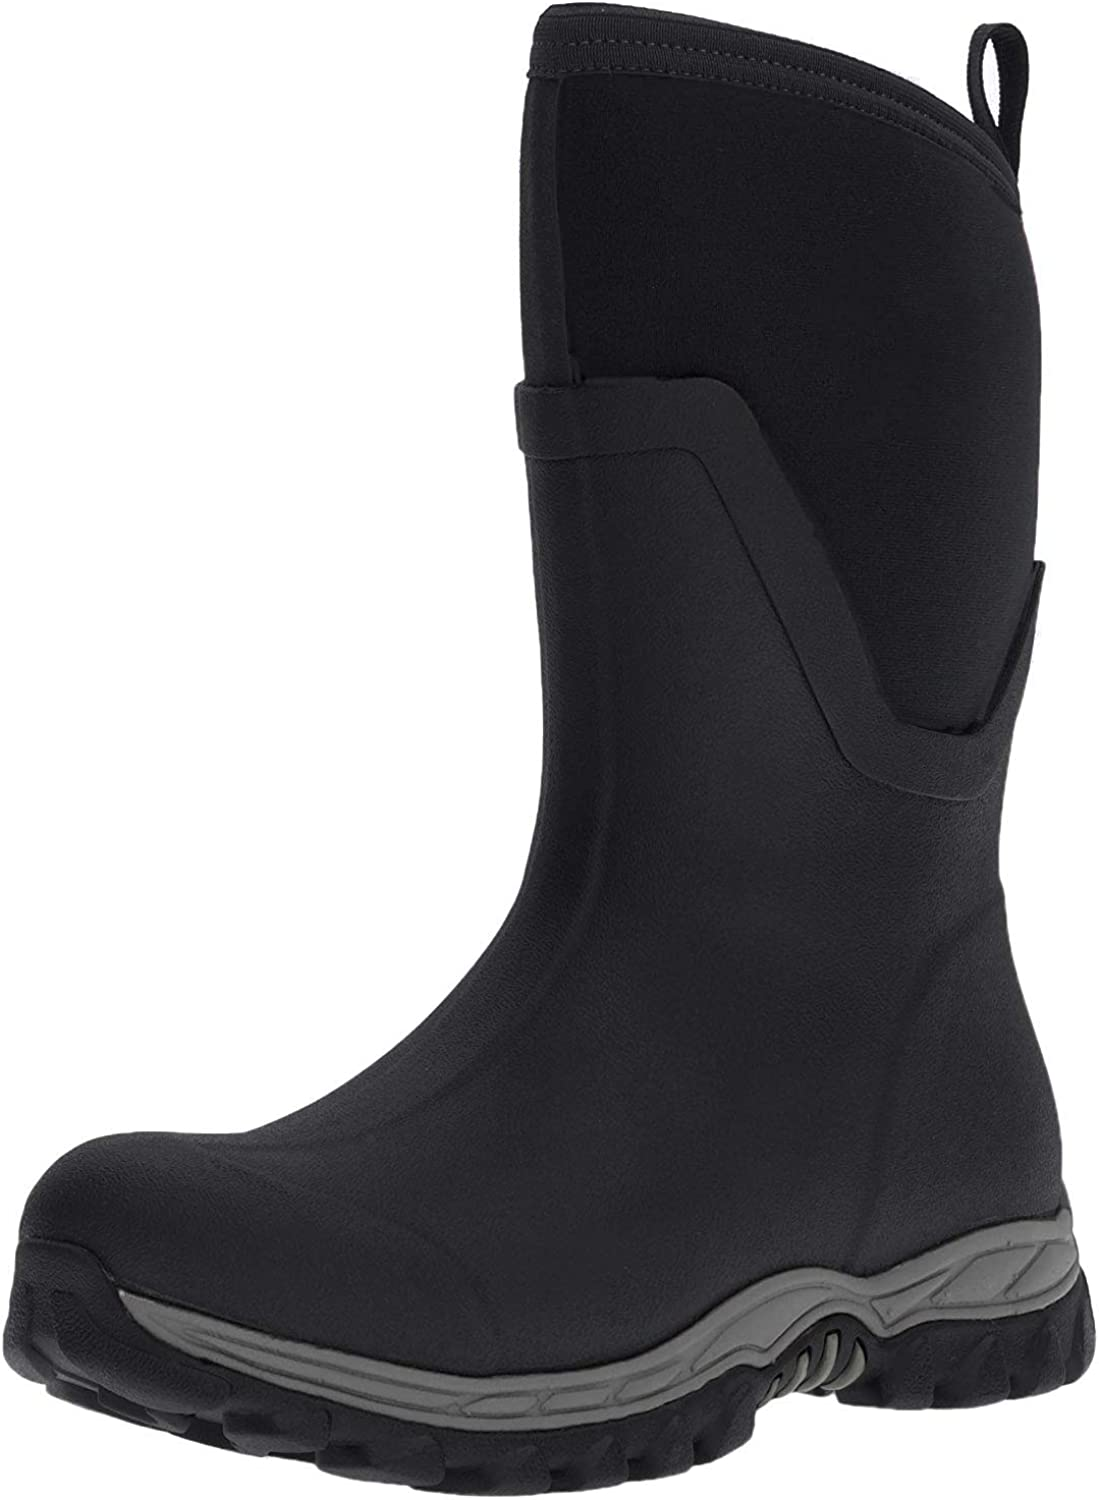 | Muck Boot Arctic Sport II Extreme Conditions Mid-Height Rubber Women's Winter Boot | Snow Boots